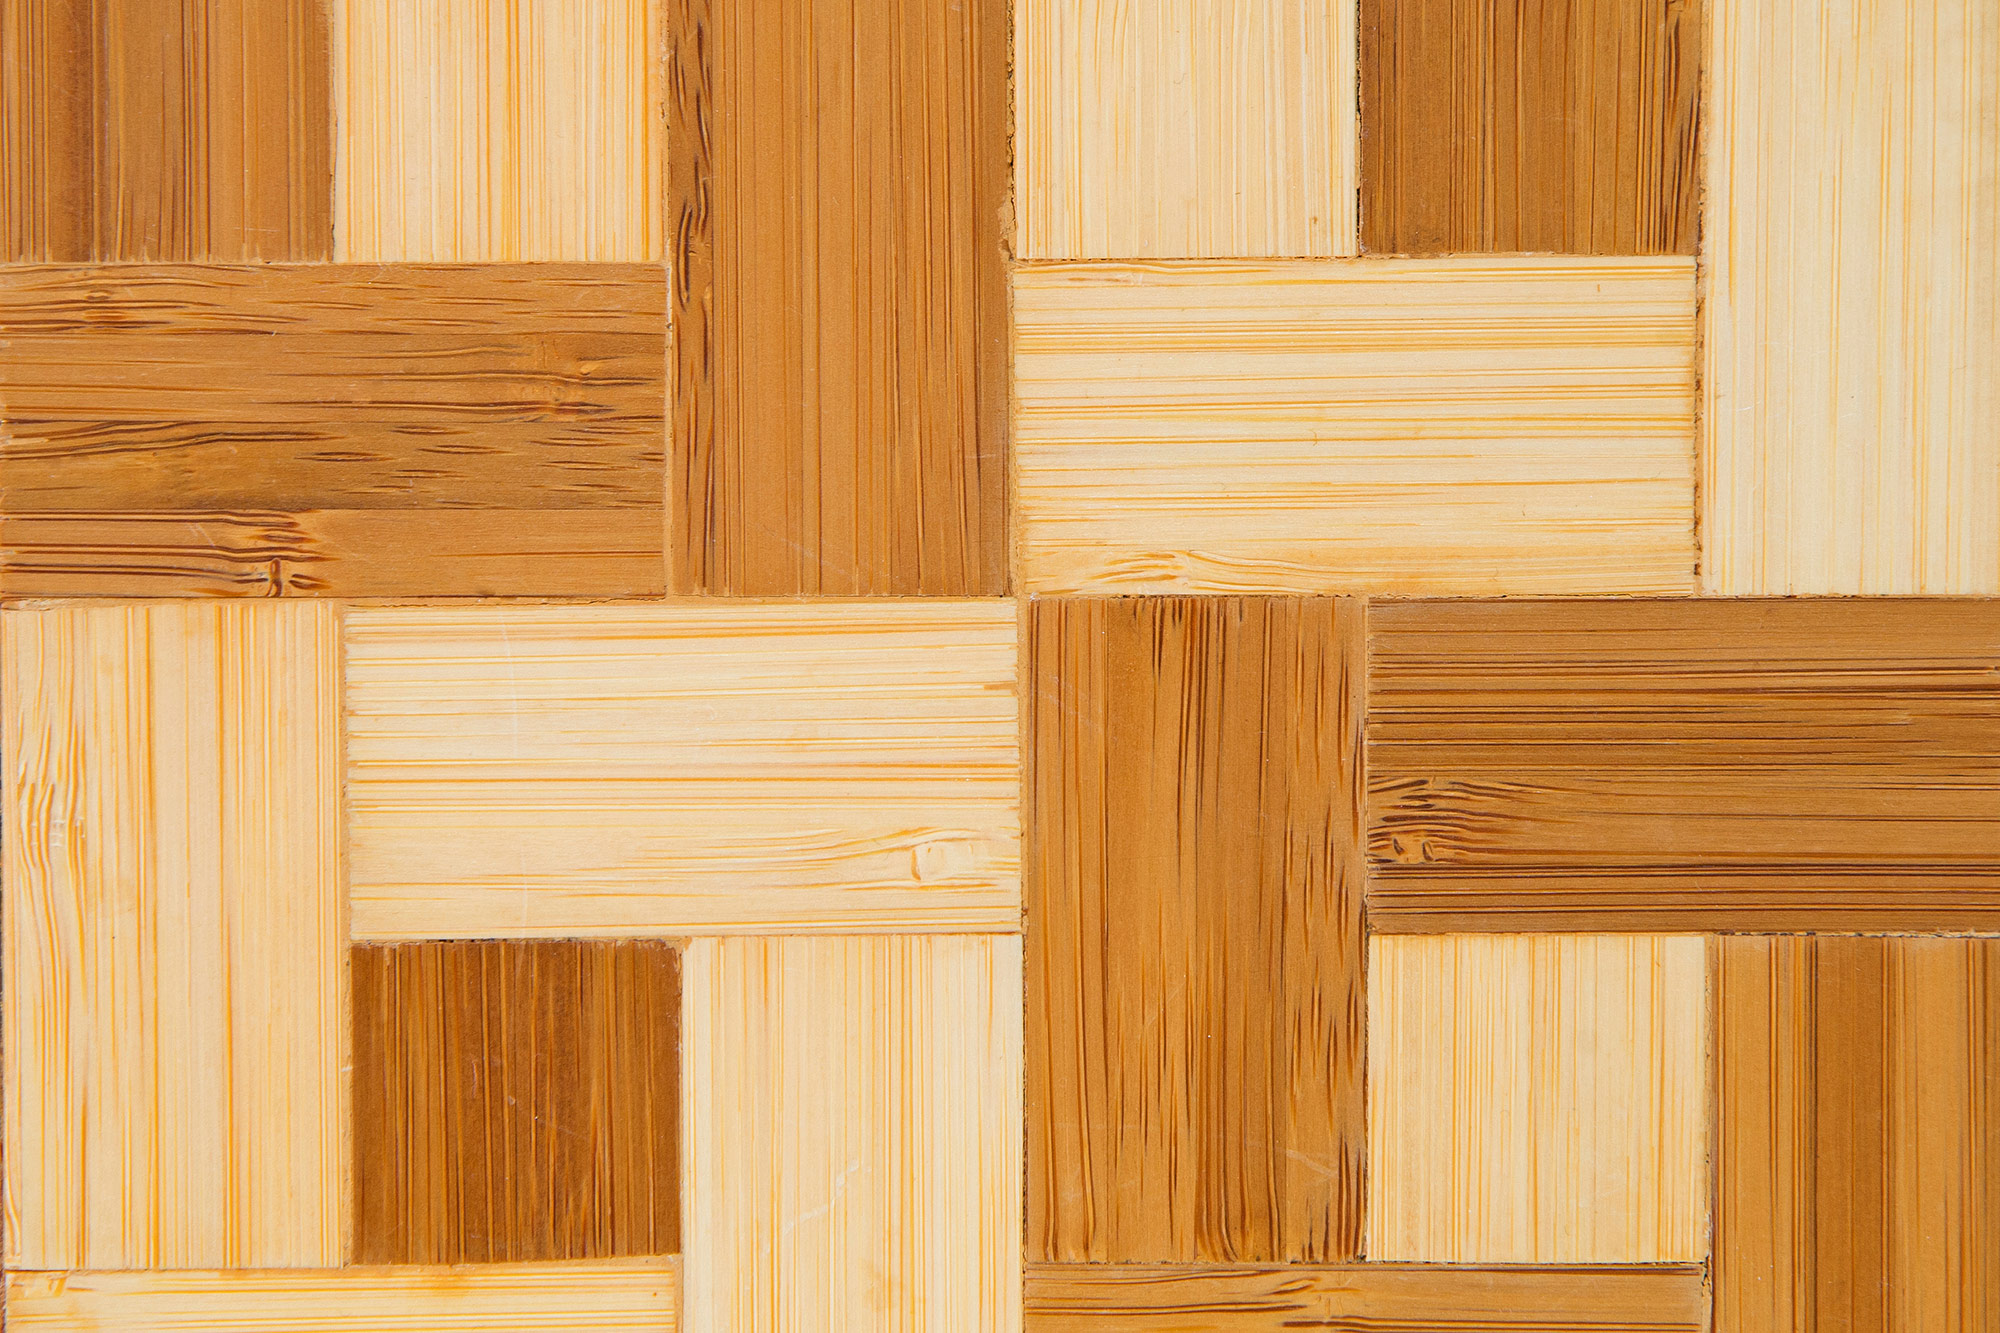 bamboo floor tiles furniture:vinyl bamboo designs floor tiles for kitchen delightful  philippines india style ceramic XKSKPXZ